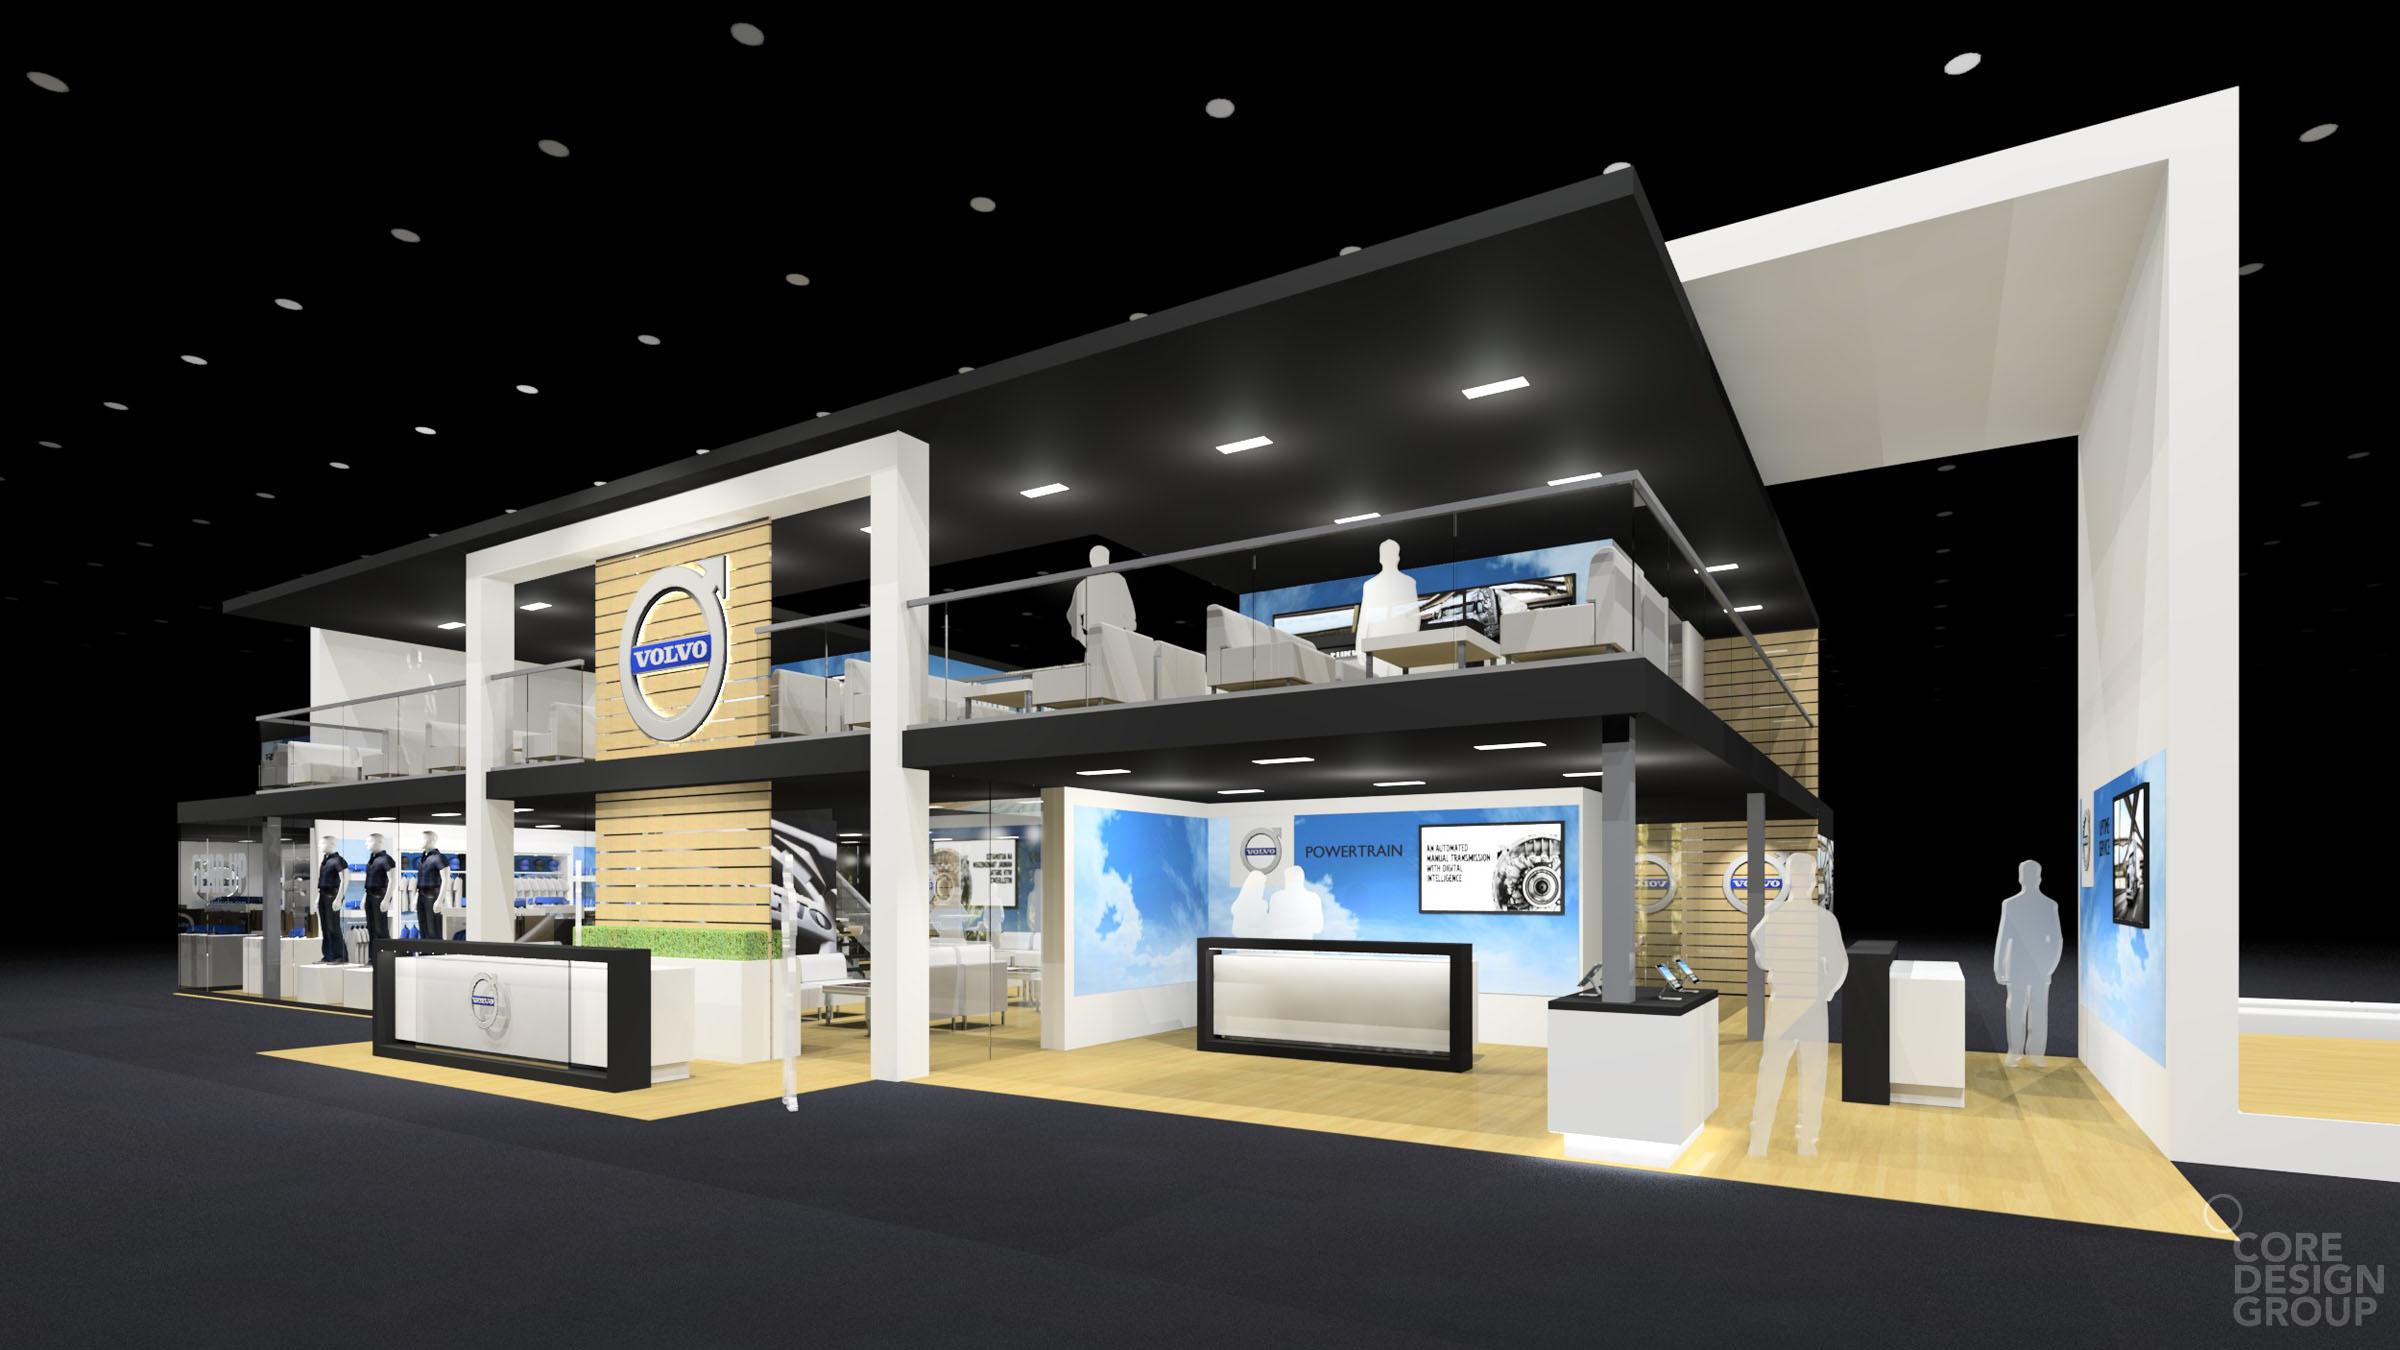 Freelance Exhibition Stand Design : Volvo core design group